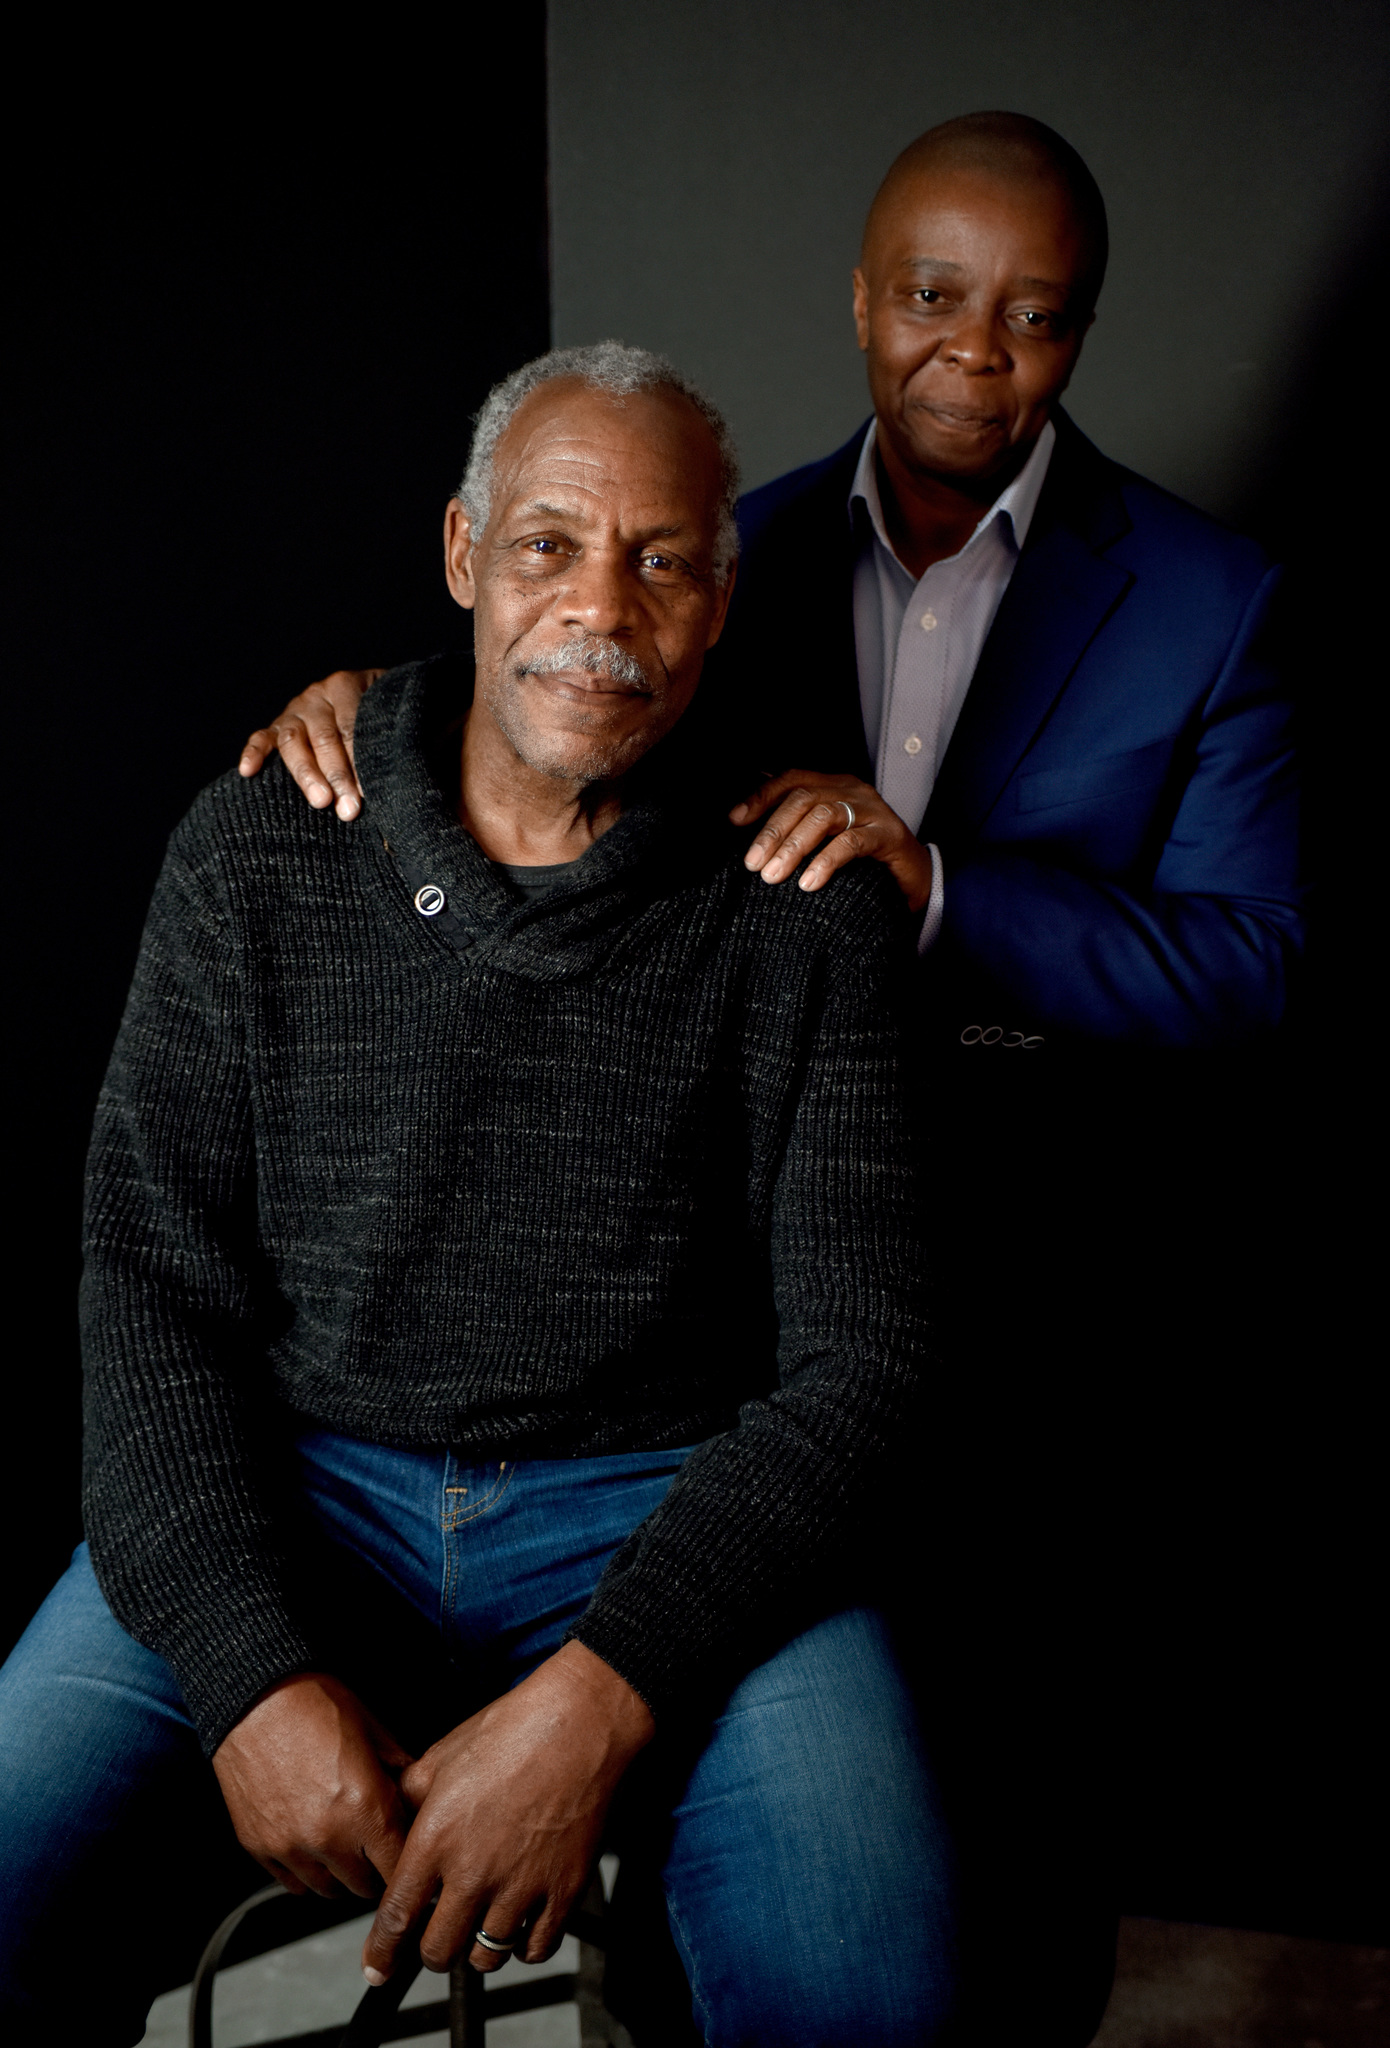 Danny Glover and Yance Ford